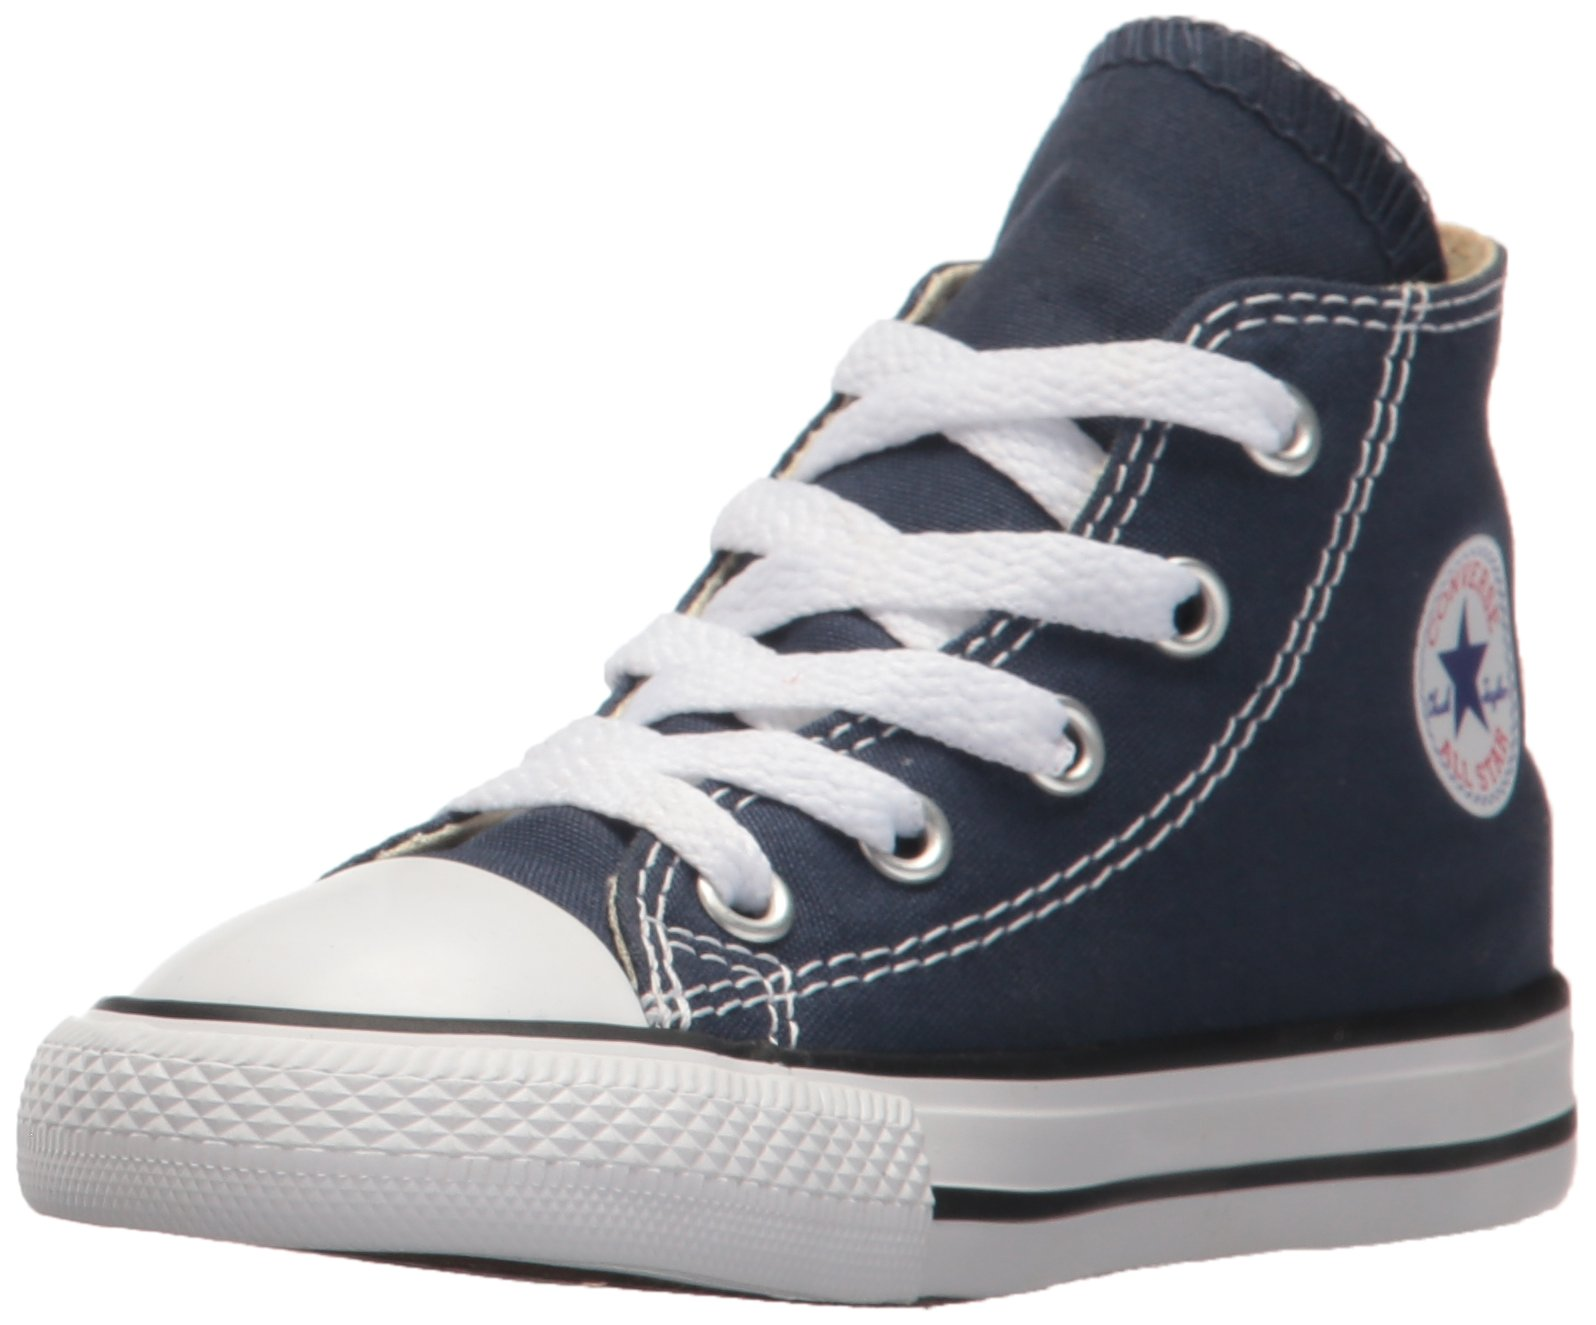 a23caa590d7cf Converse Clothing & Apparel Chuck Taylor All Star High Top Kids Sneaker,  Navy, 8